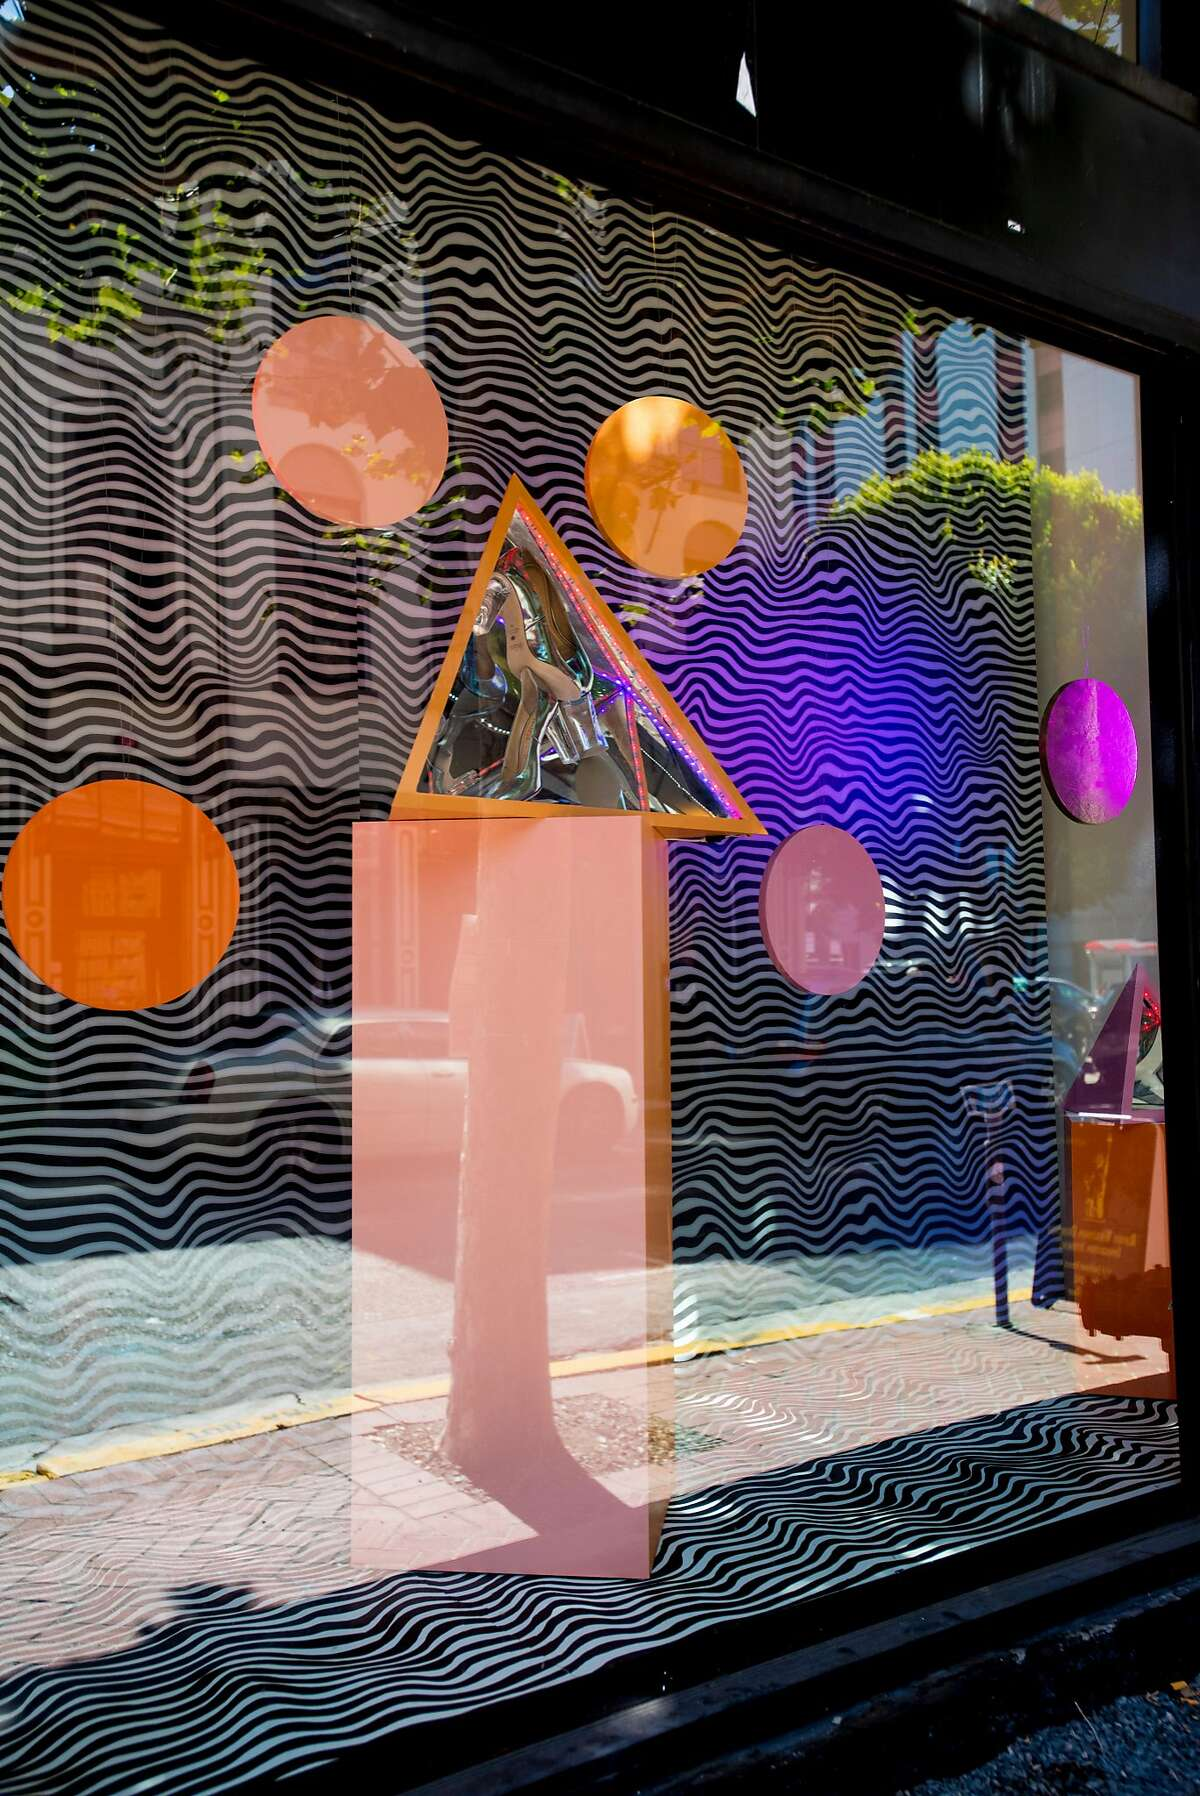 """A kaleidoscope-like """"optical installation"""" by photographer Anna-Alexia Basile was part of the opening festivities at Pia, a new designer womenswear boutique that opened Sept. 15 in Jackson Square"""